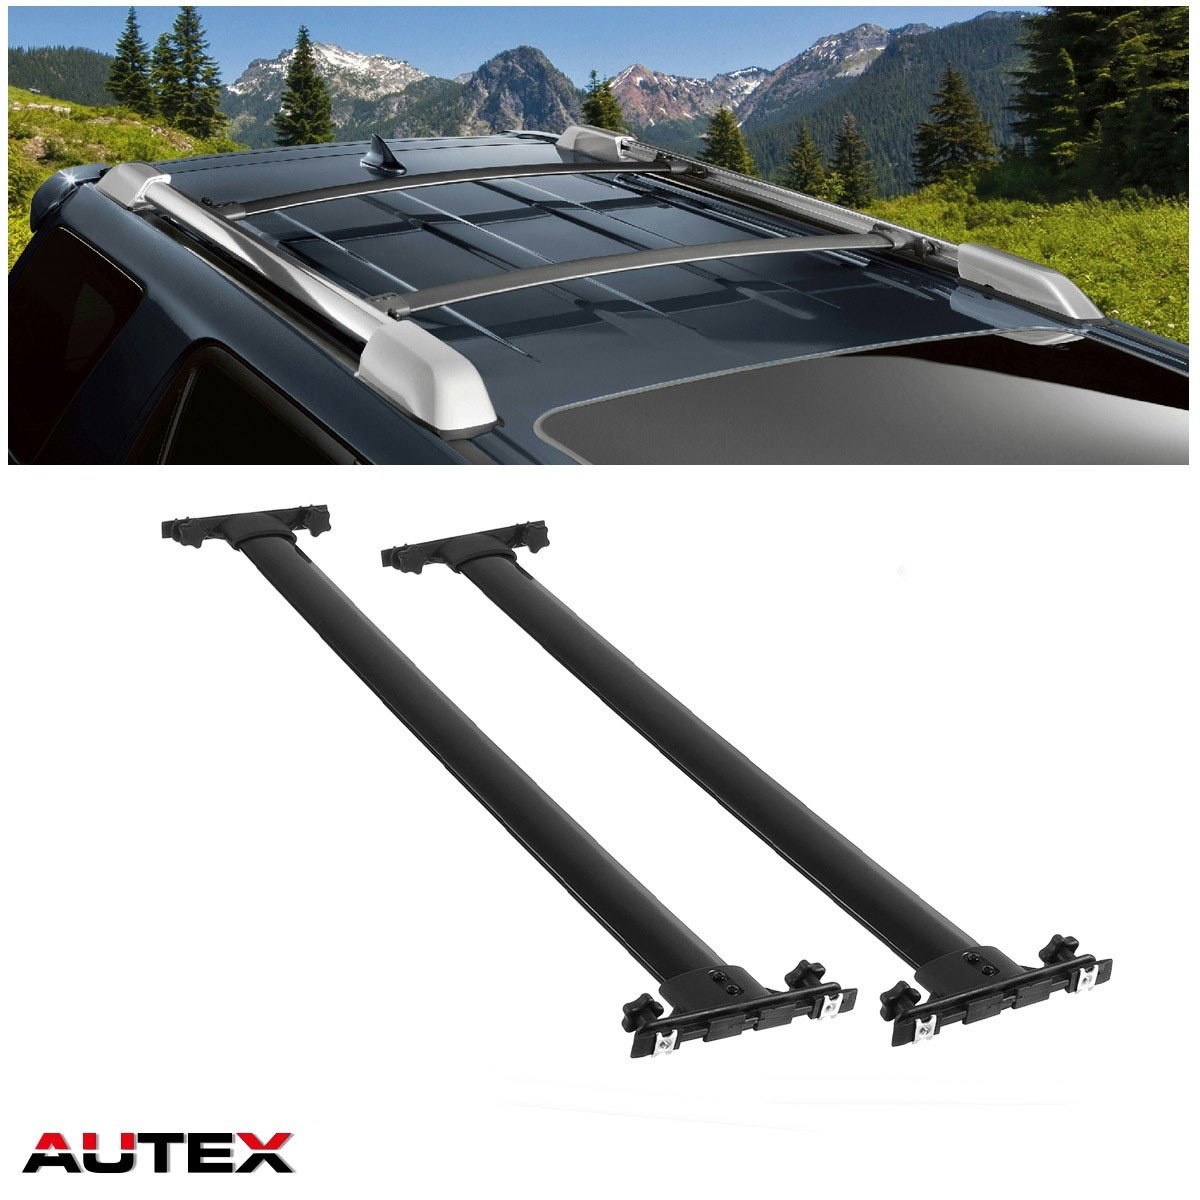 AUTEX Aluminum Cross Bar Roof Rack Compatible with Toyota Highlander 2008 2009 2010 2011 2012 2013 Highlander Crossbar Rooftop Rack Luggage Carrier Cargo Bars